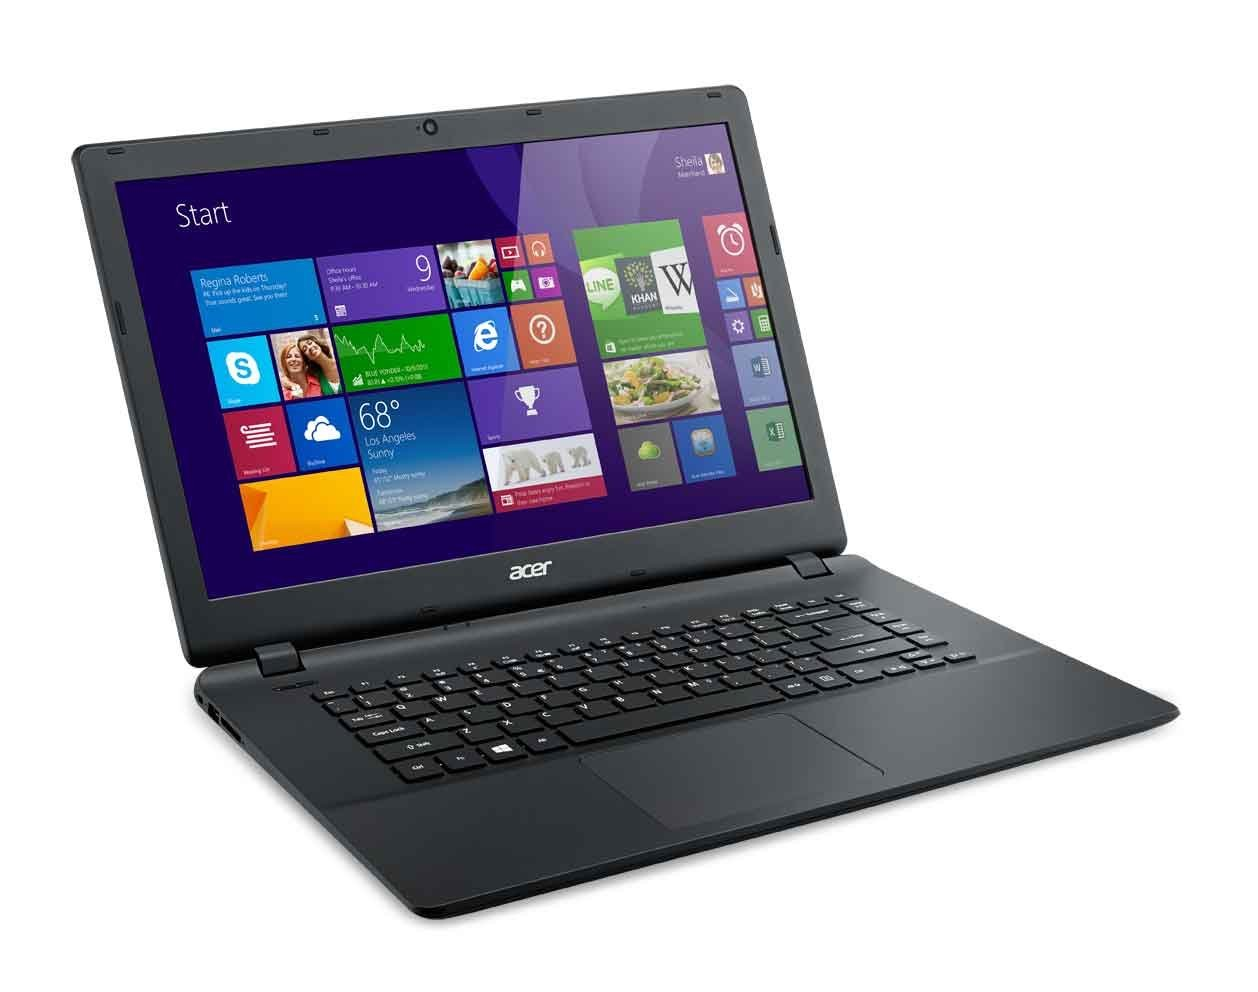 how to open the dvd drive on acer aspire e5